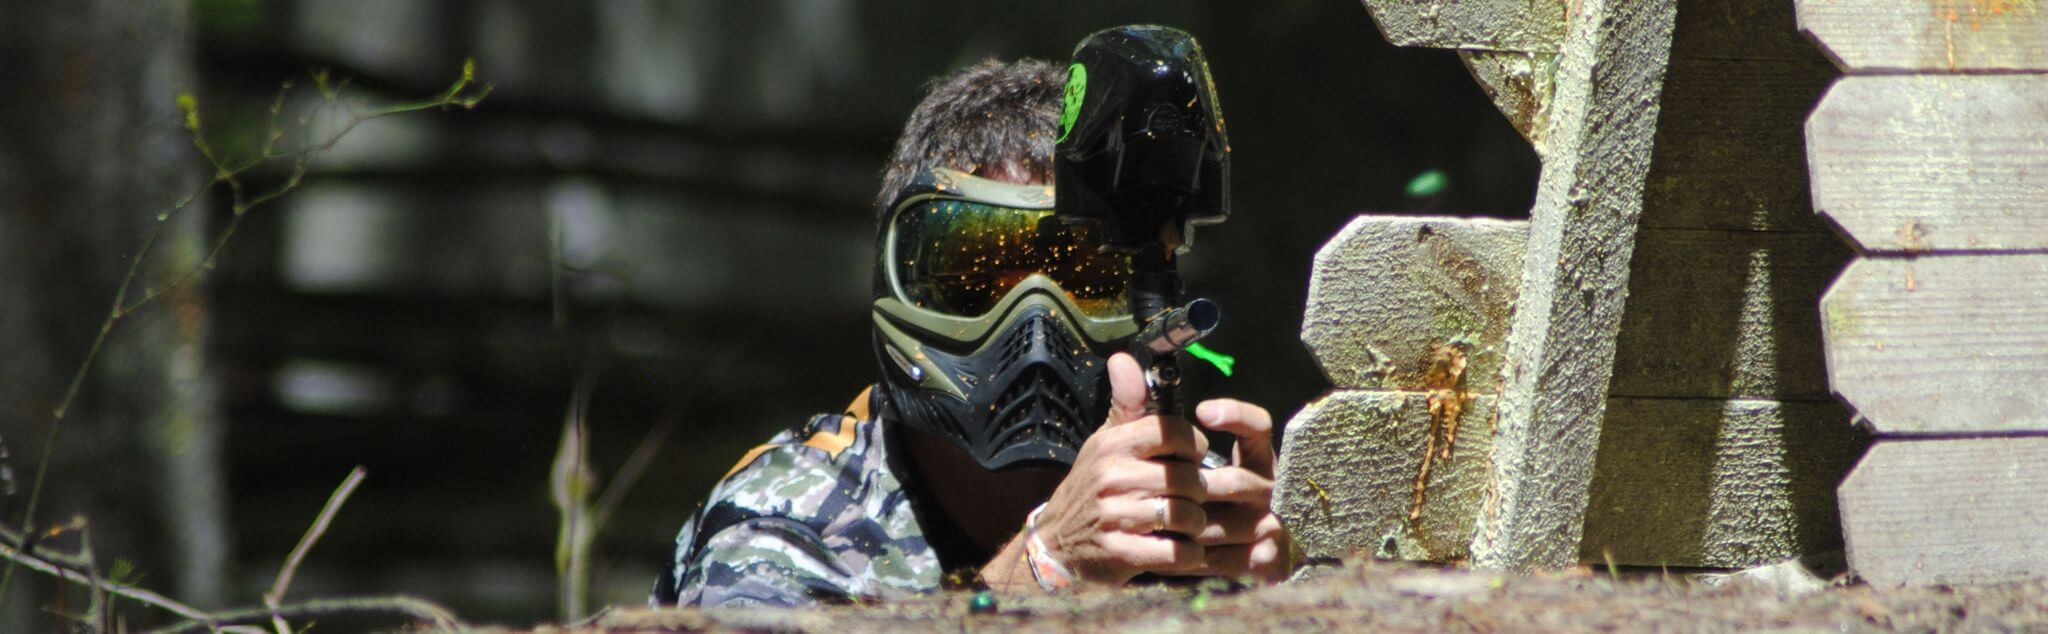 Paintball in Manises